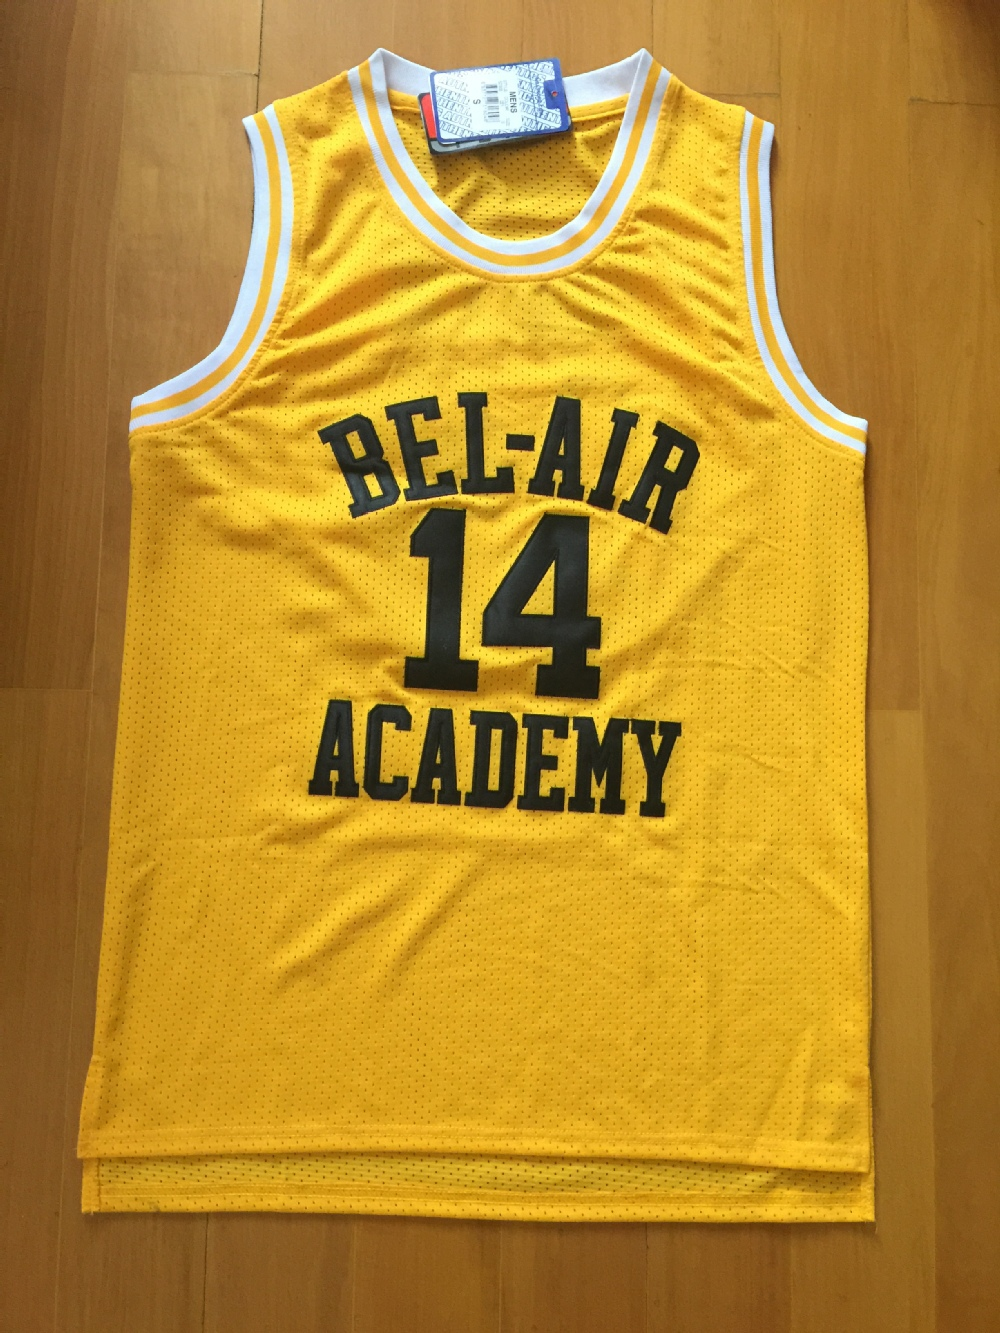 Will Smith Basketball Jersey,14 Will Smith Fresh Prince Jersey,Bel Air Academy Jersey,Stitched Bel Air Jersey Yellow S to 3XL(China (Mainland))